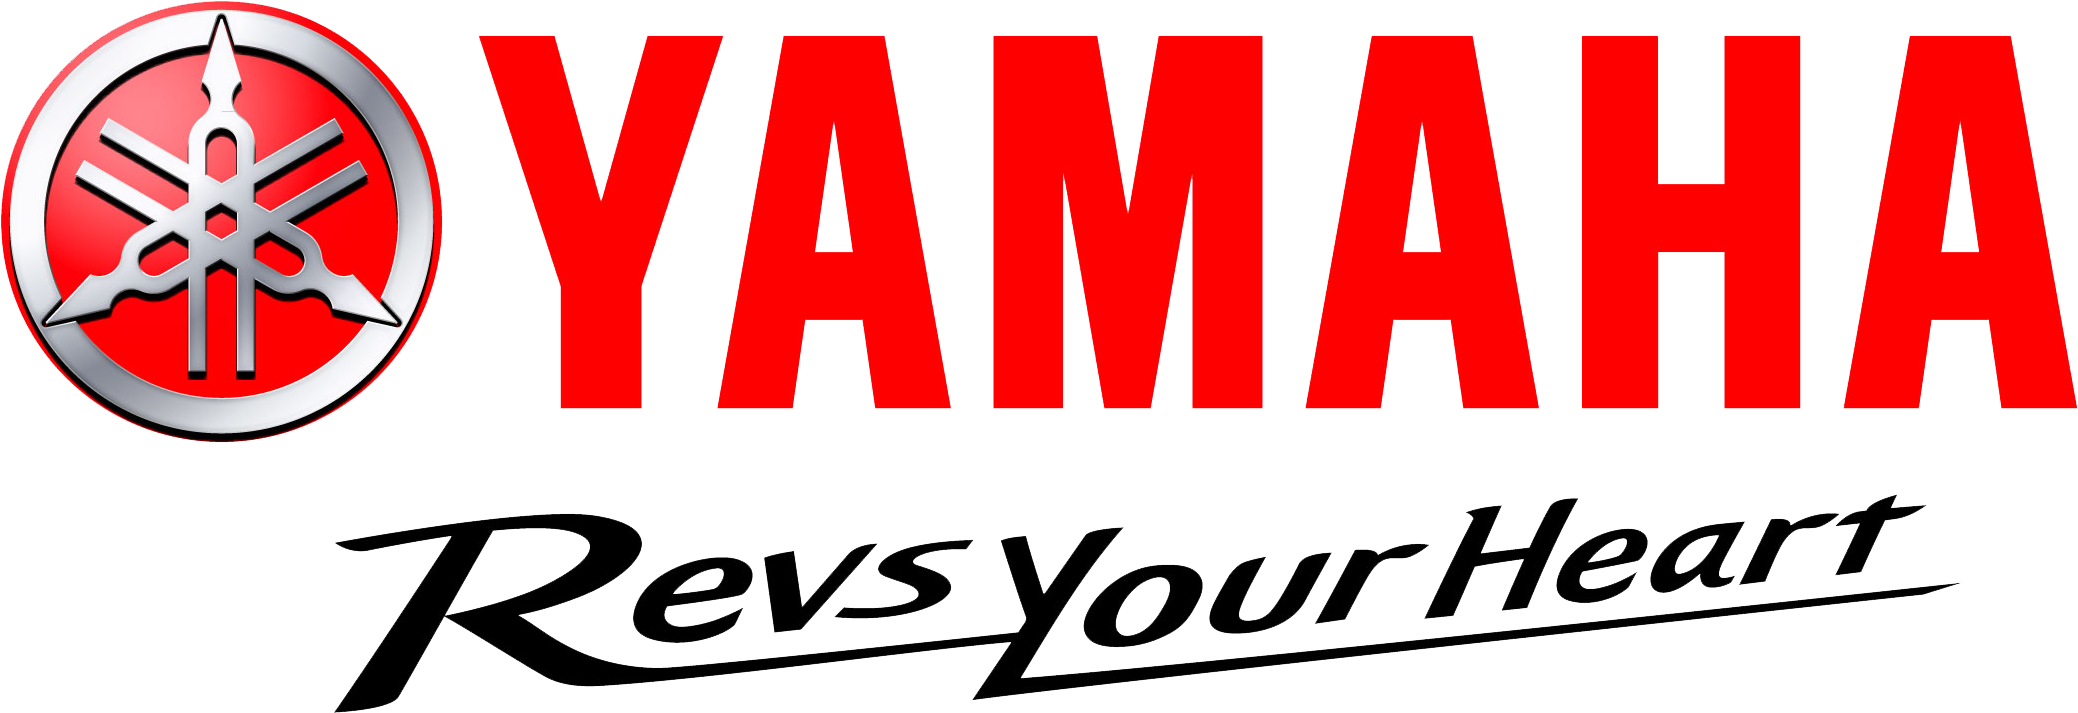 467-4671415_logotipo-yamaha-revs-your-heart